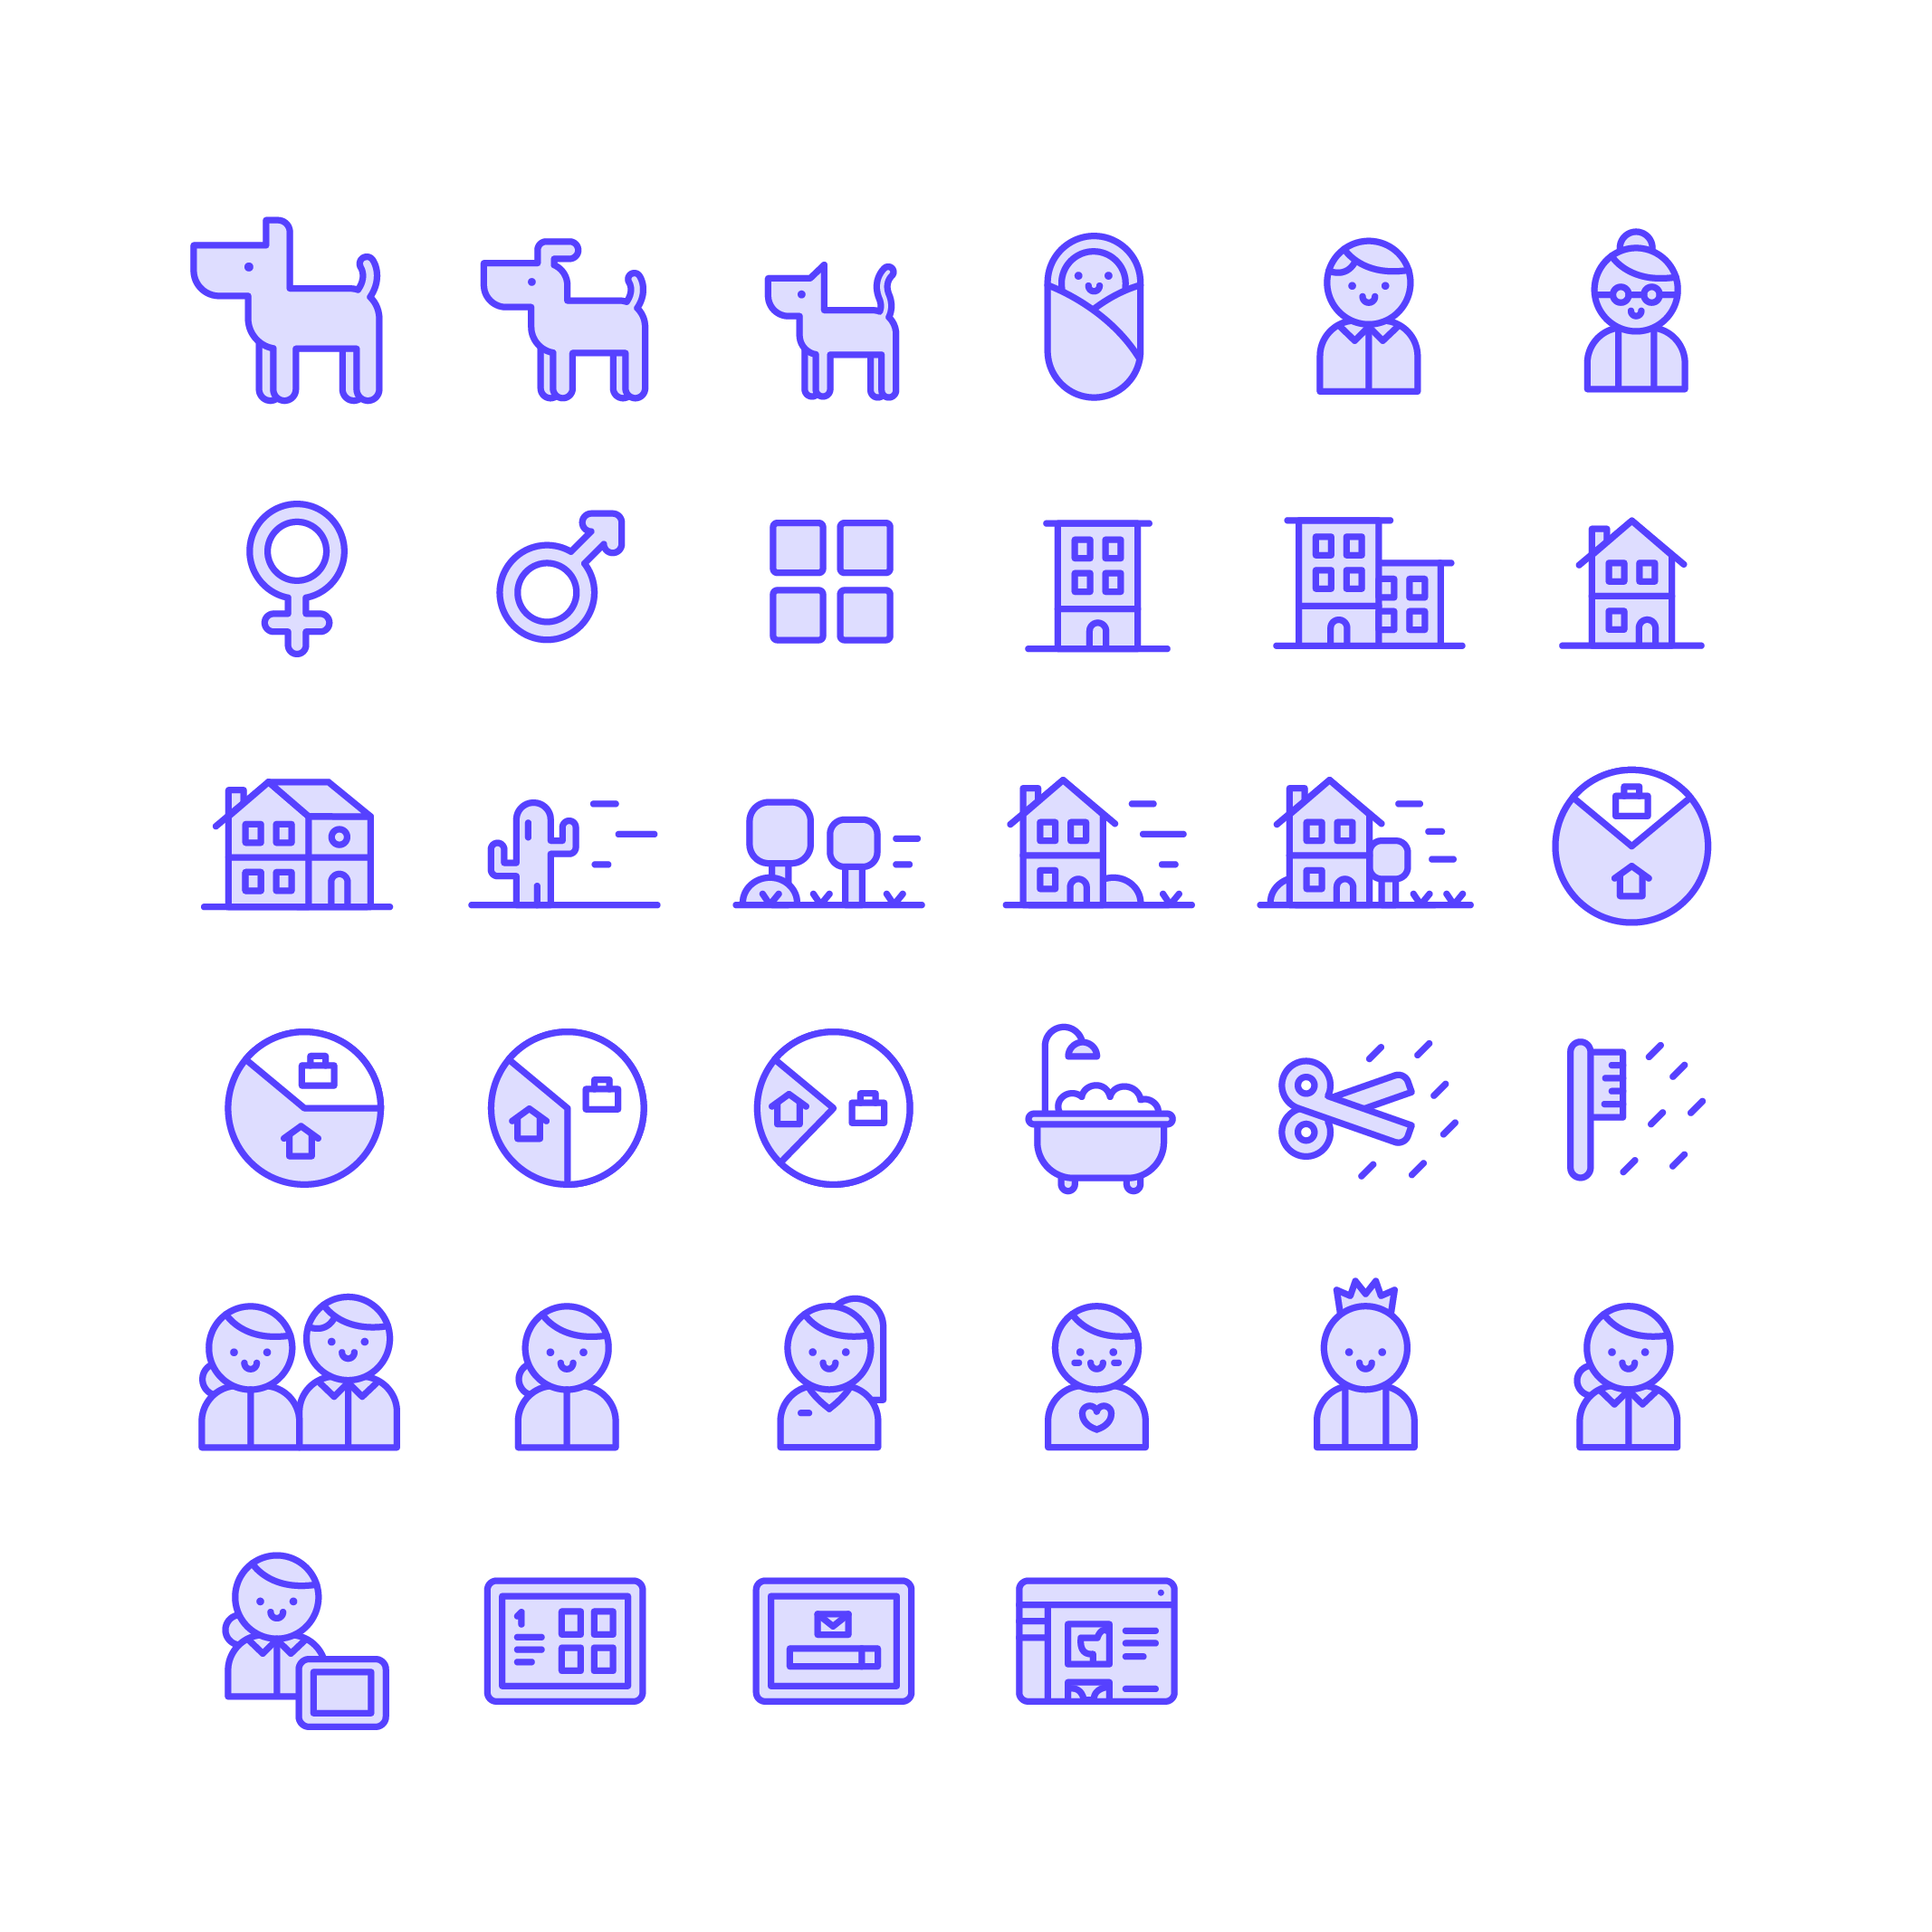 pm_icons-01.png